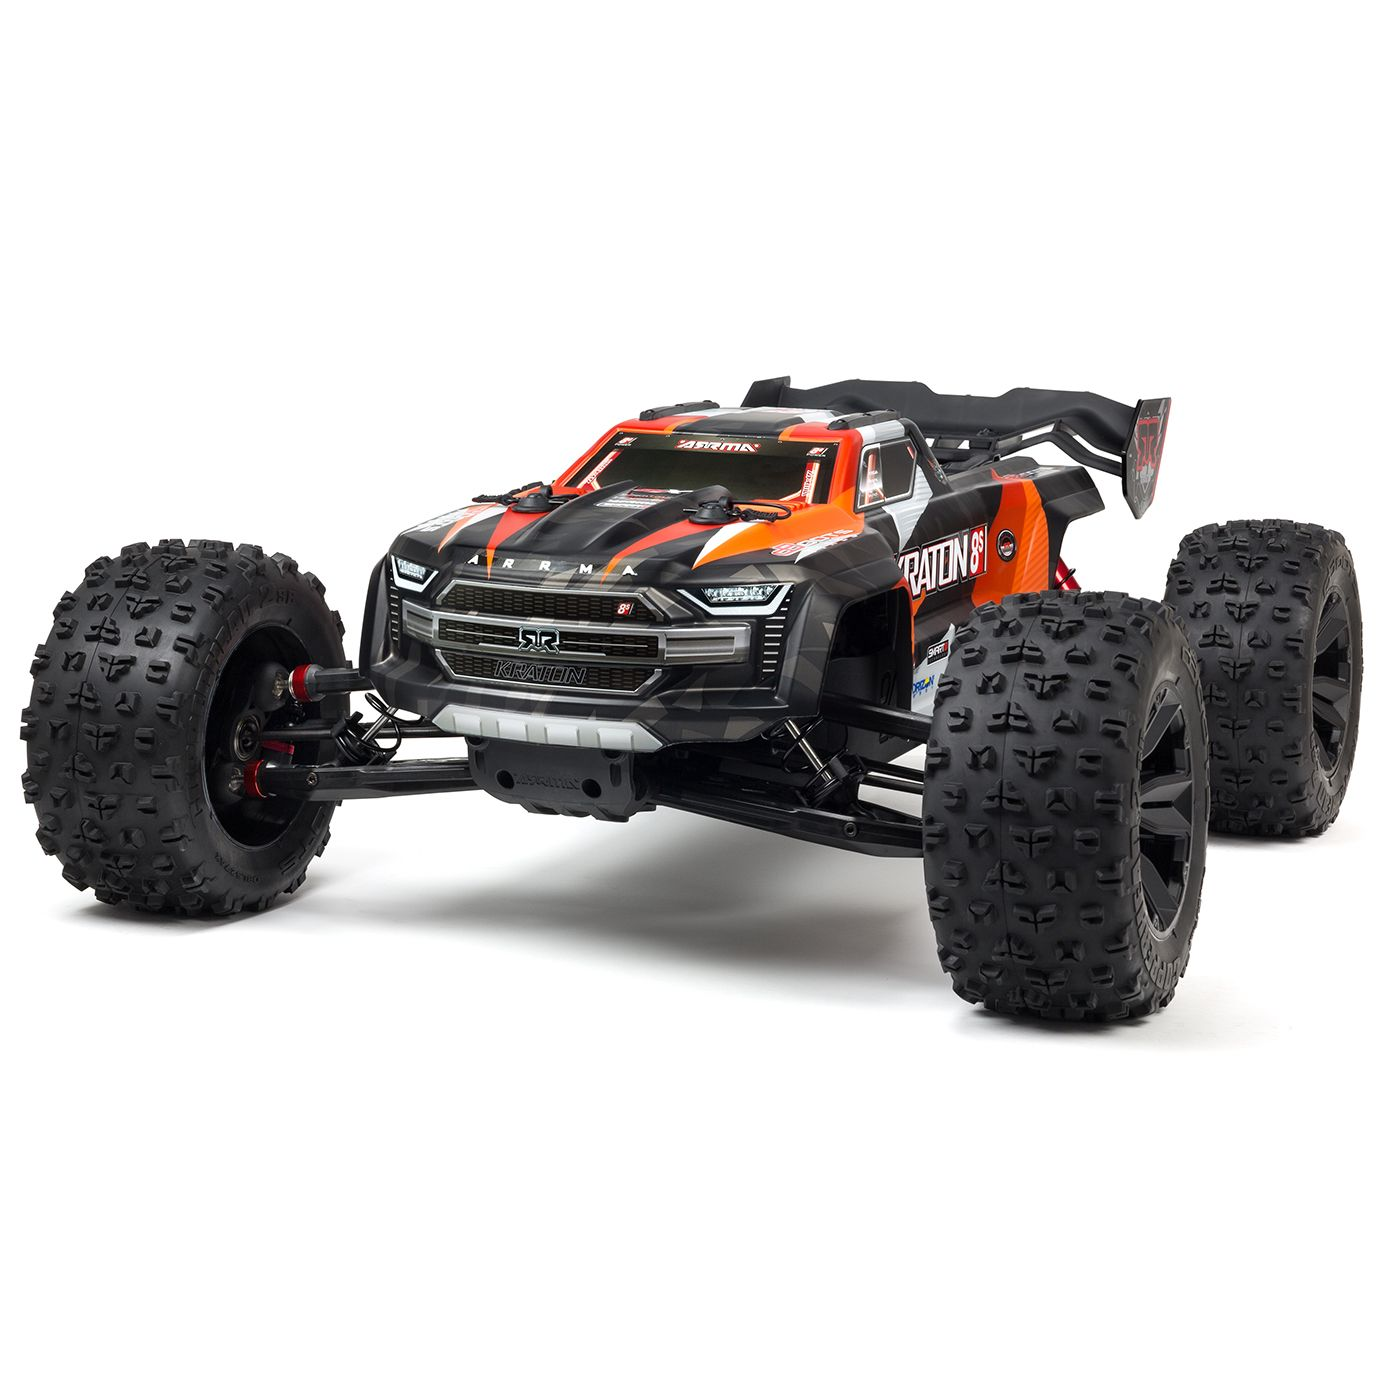 "ARRMA 1/5 KRATON 4X4 8S BLX Brushless Speed Monster Truck RTR, Orange <font color=""red""><b>(PREORDER)</b></font>"